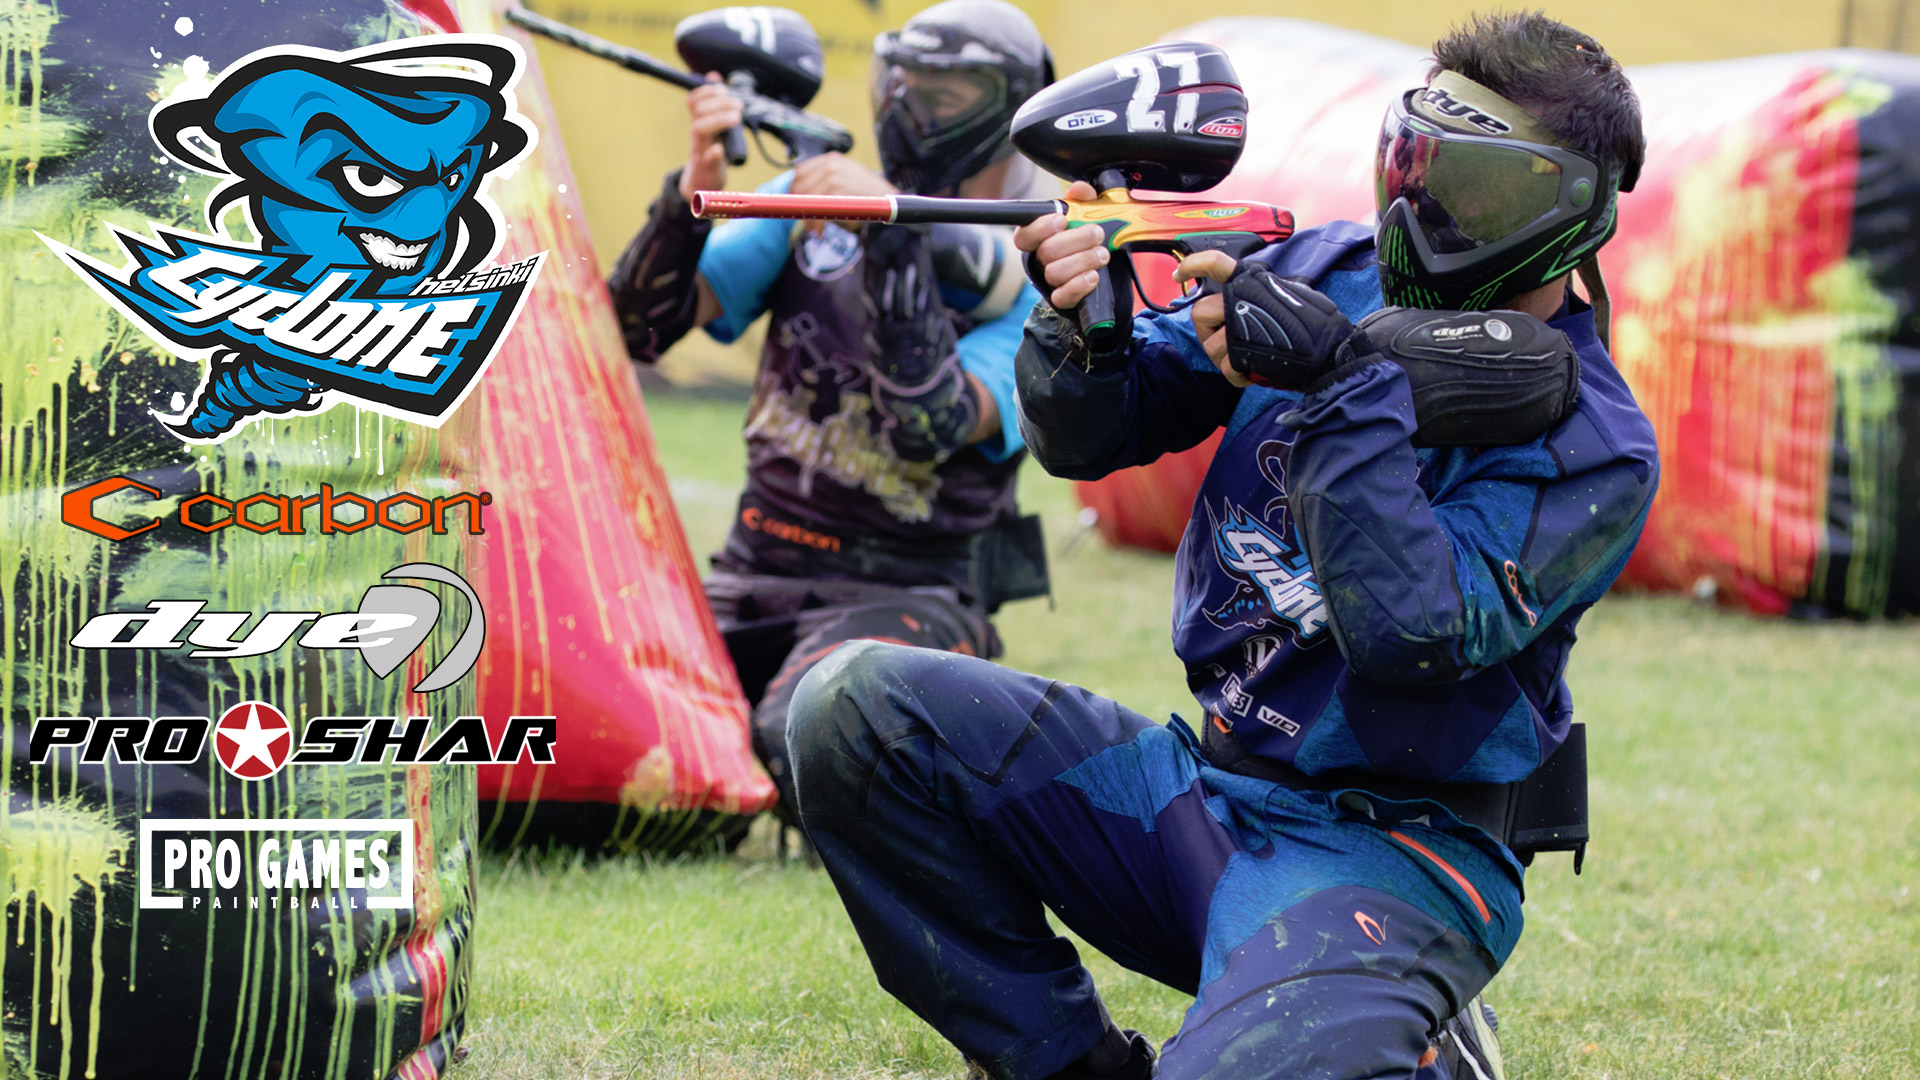 Helsinki Cyclone Paintball Team @1996